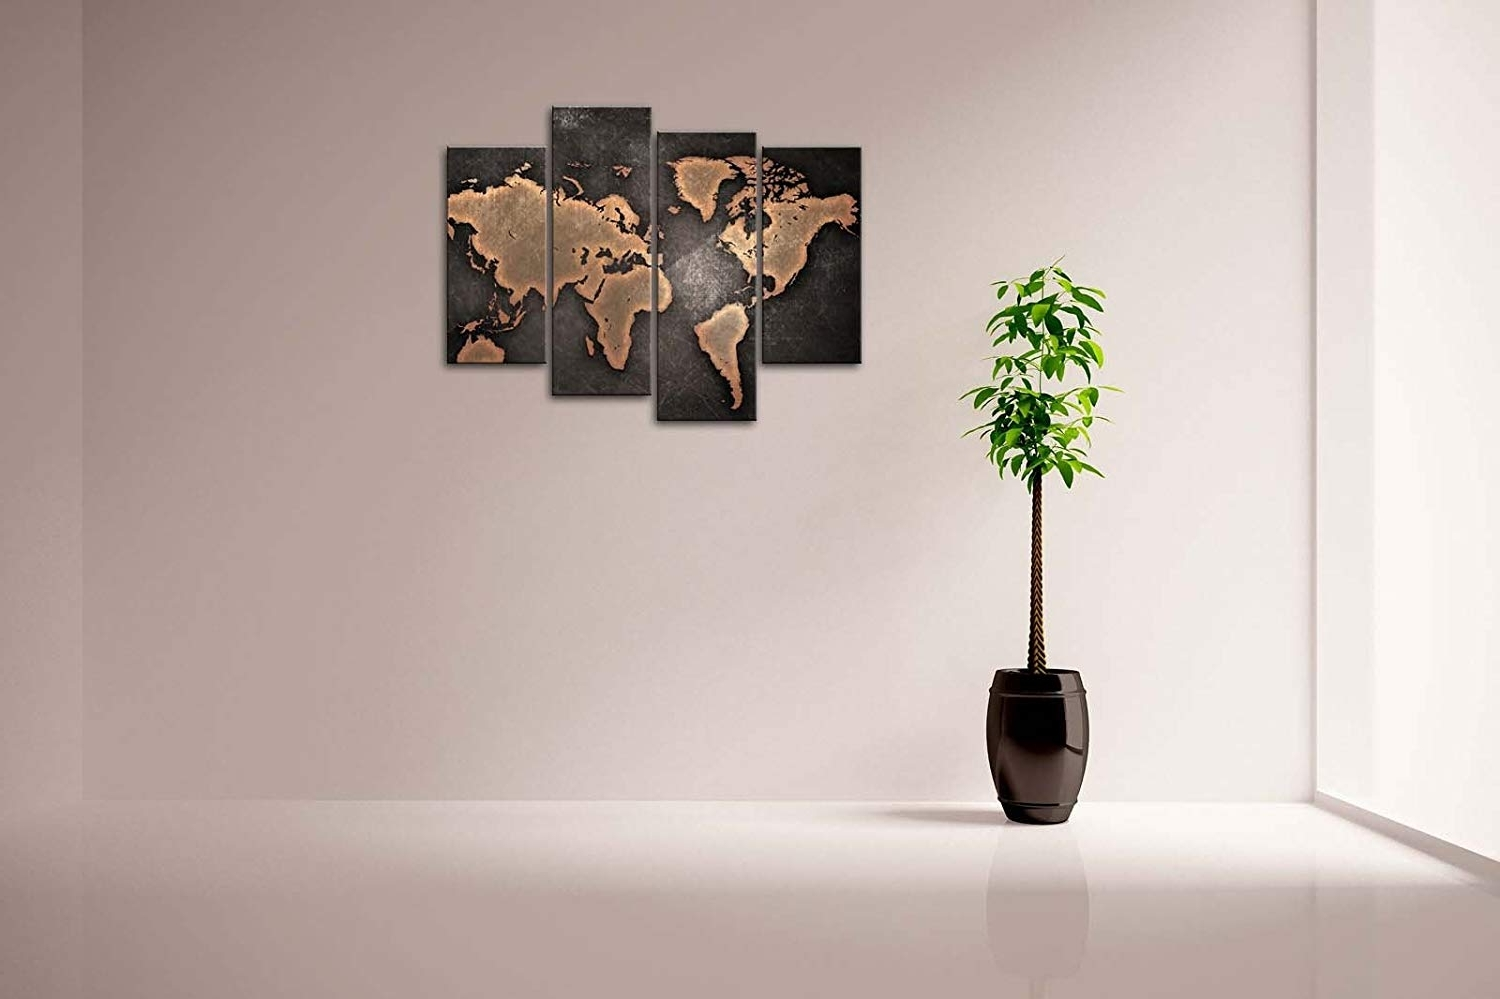 Best And Newest Modern Wall Art With Regard To Amazon: Firstwallart General World Map Black Background Wall Art (View 6 of 15)